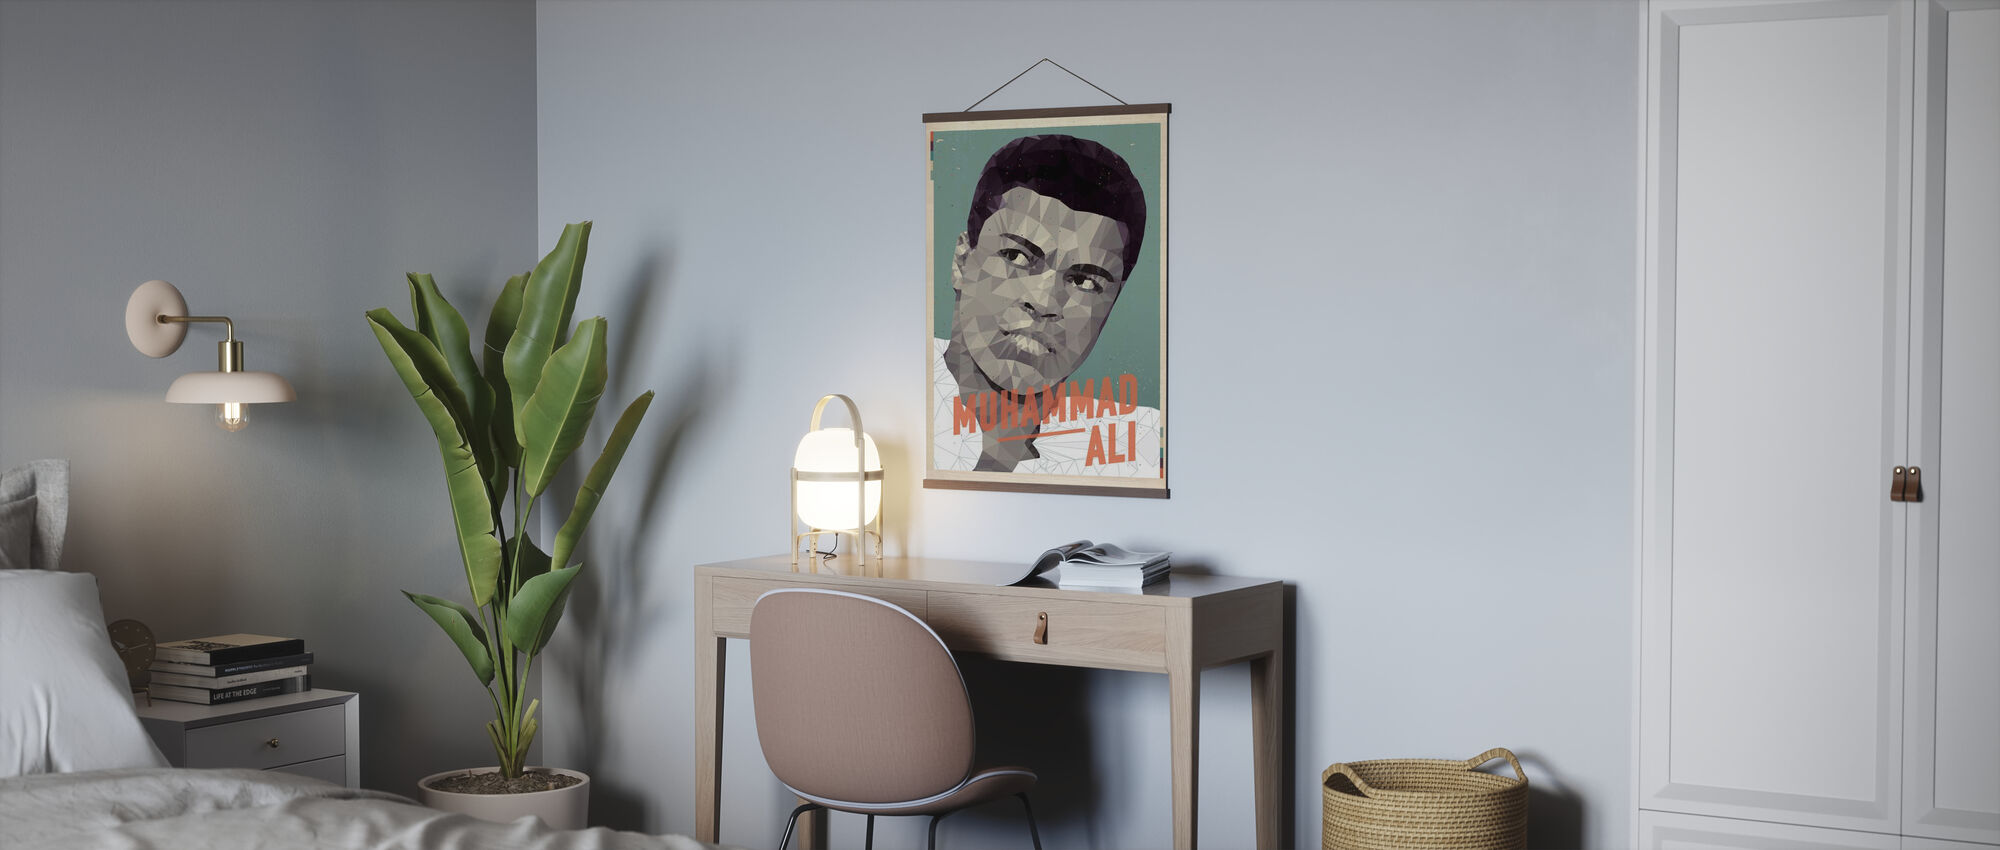 Float Like a Butterfly - Sting Like a Bee - Poster - Office